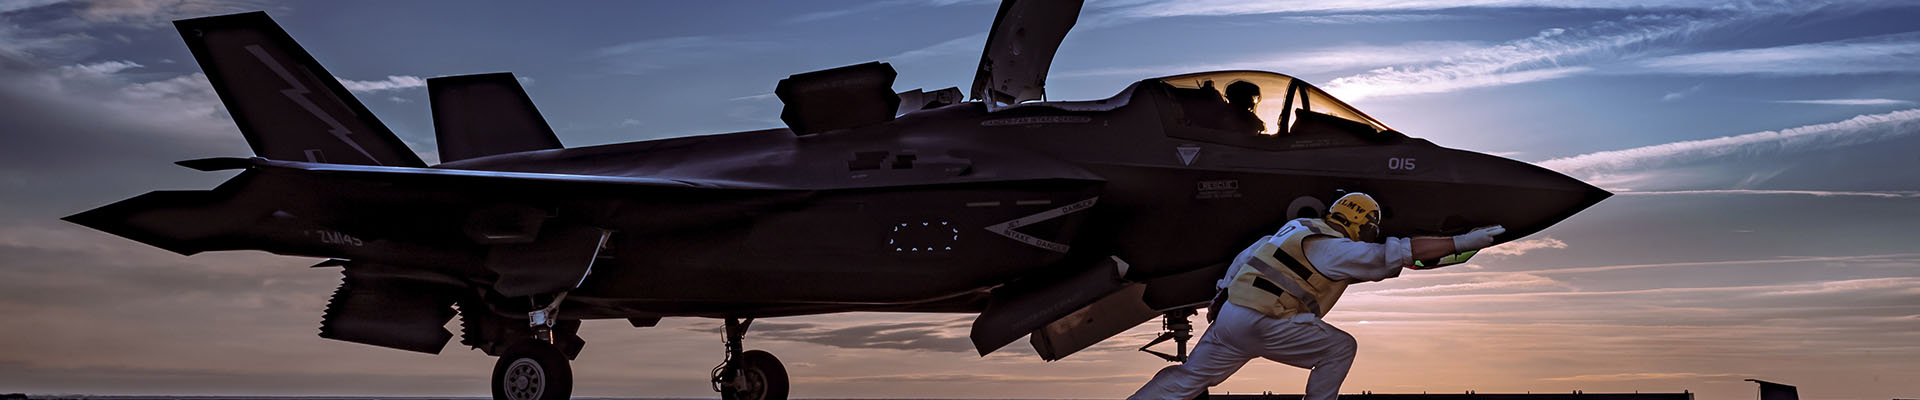 UK F-35B Lightning Fighter Jet